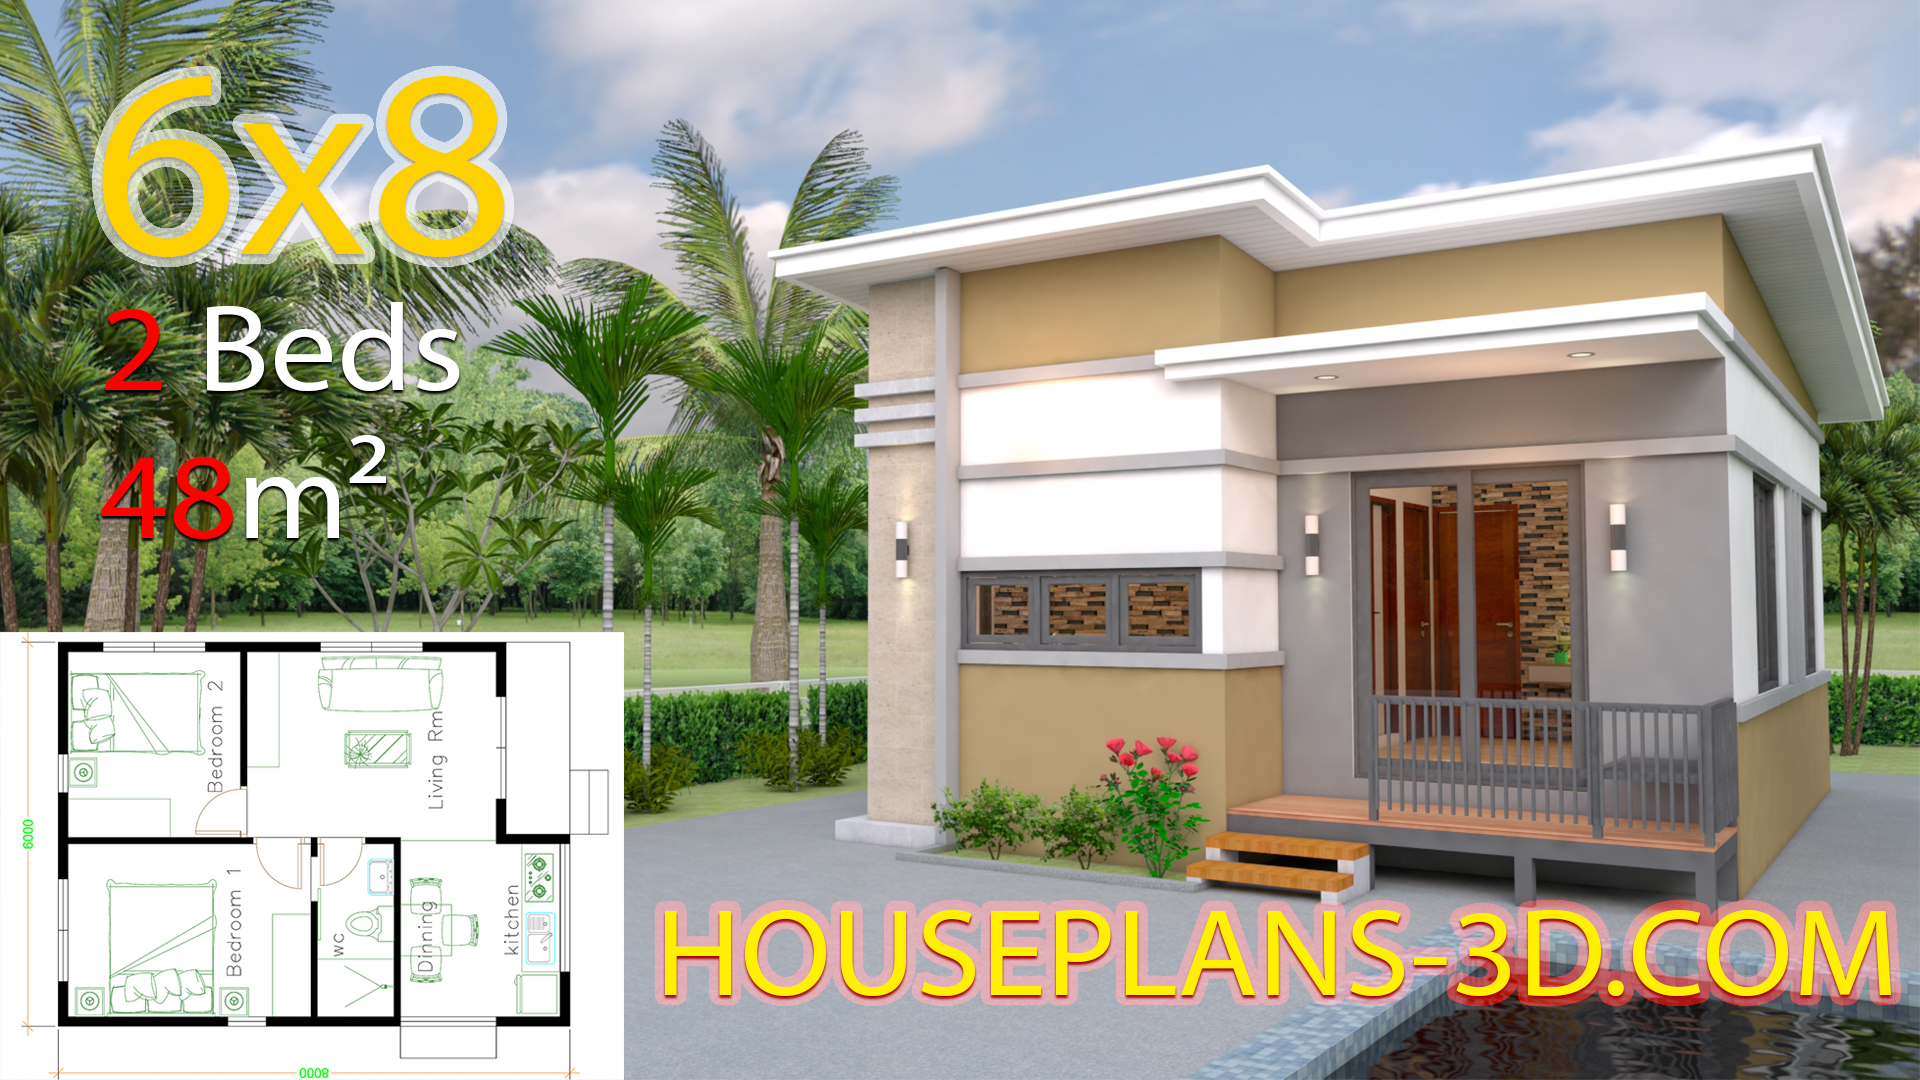 Small House Design Plans 6x8 with 2 Bedrooms - House Plans 3D